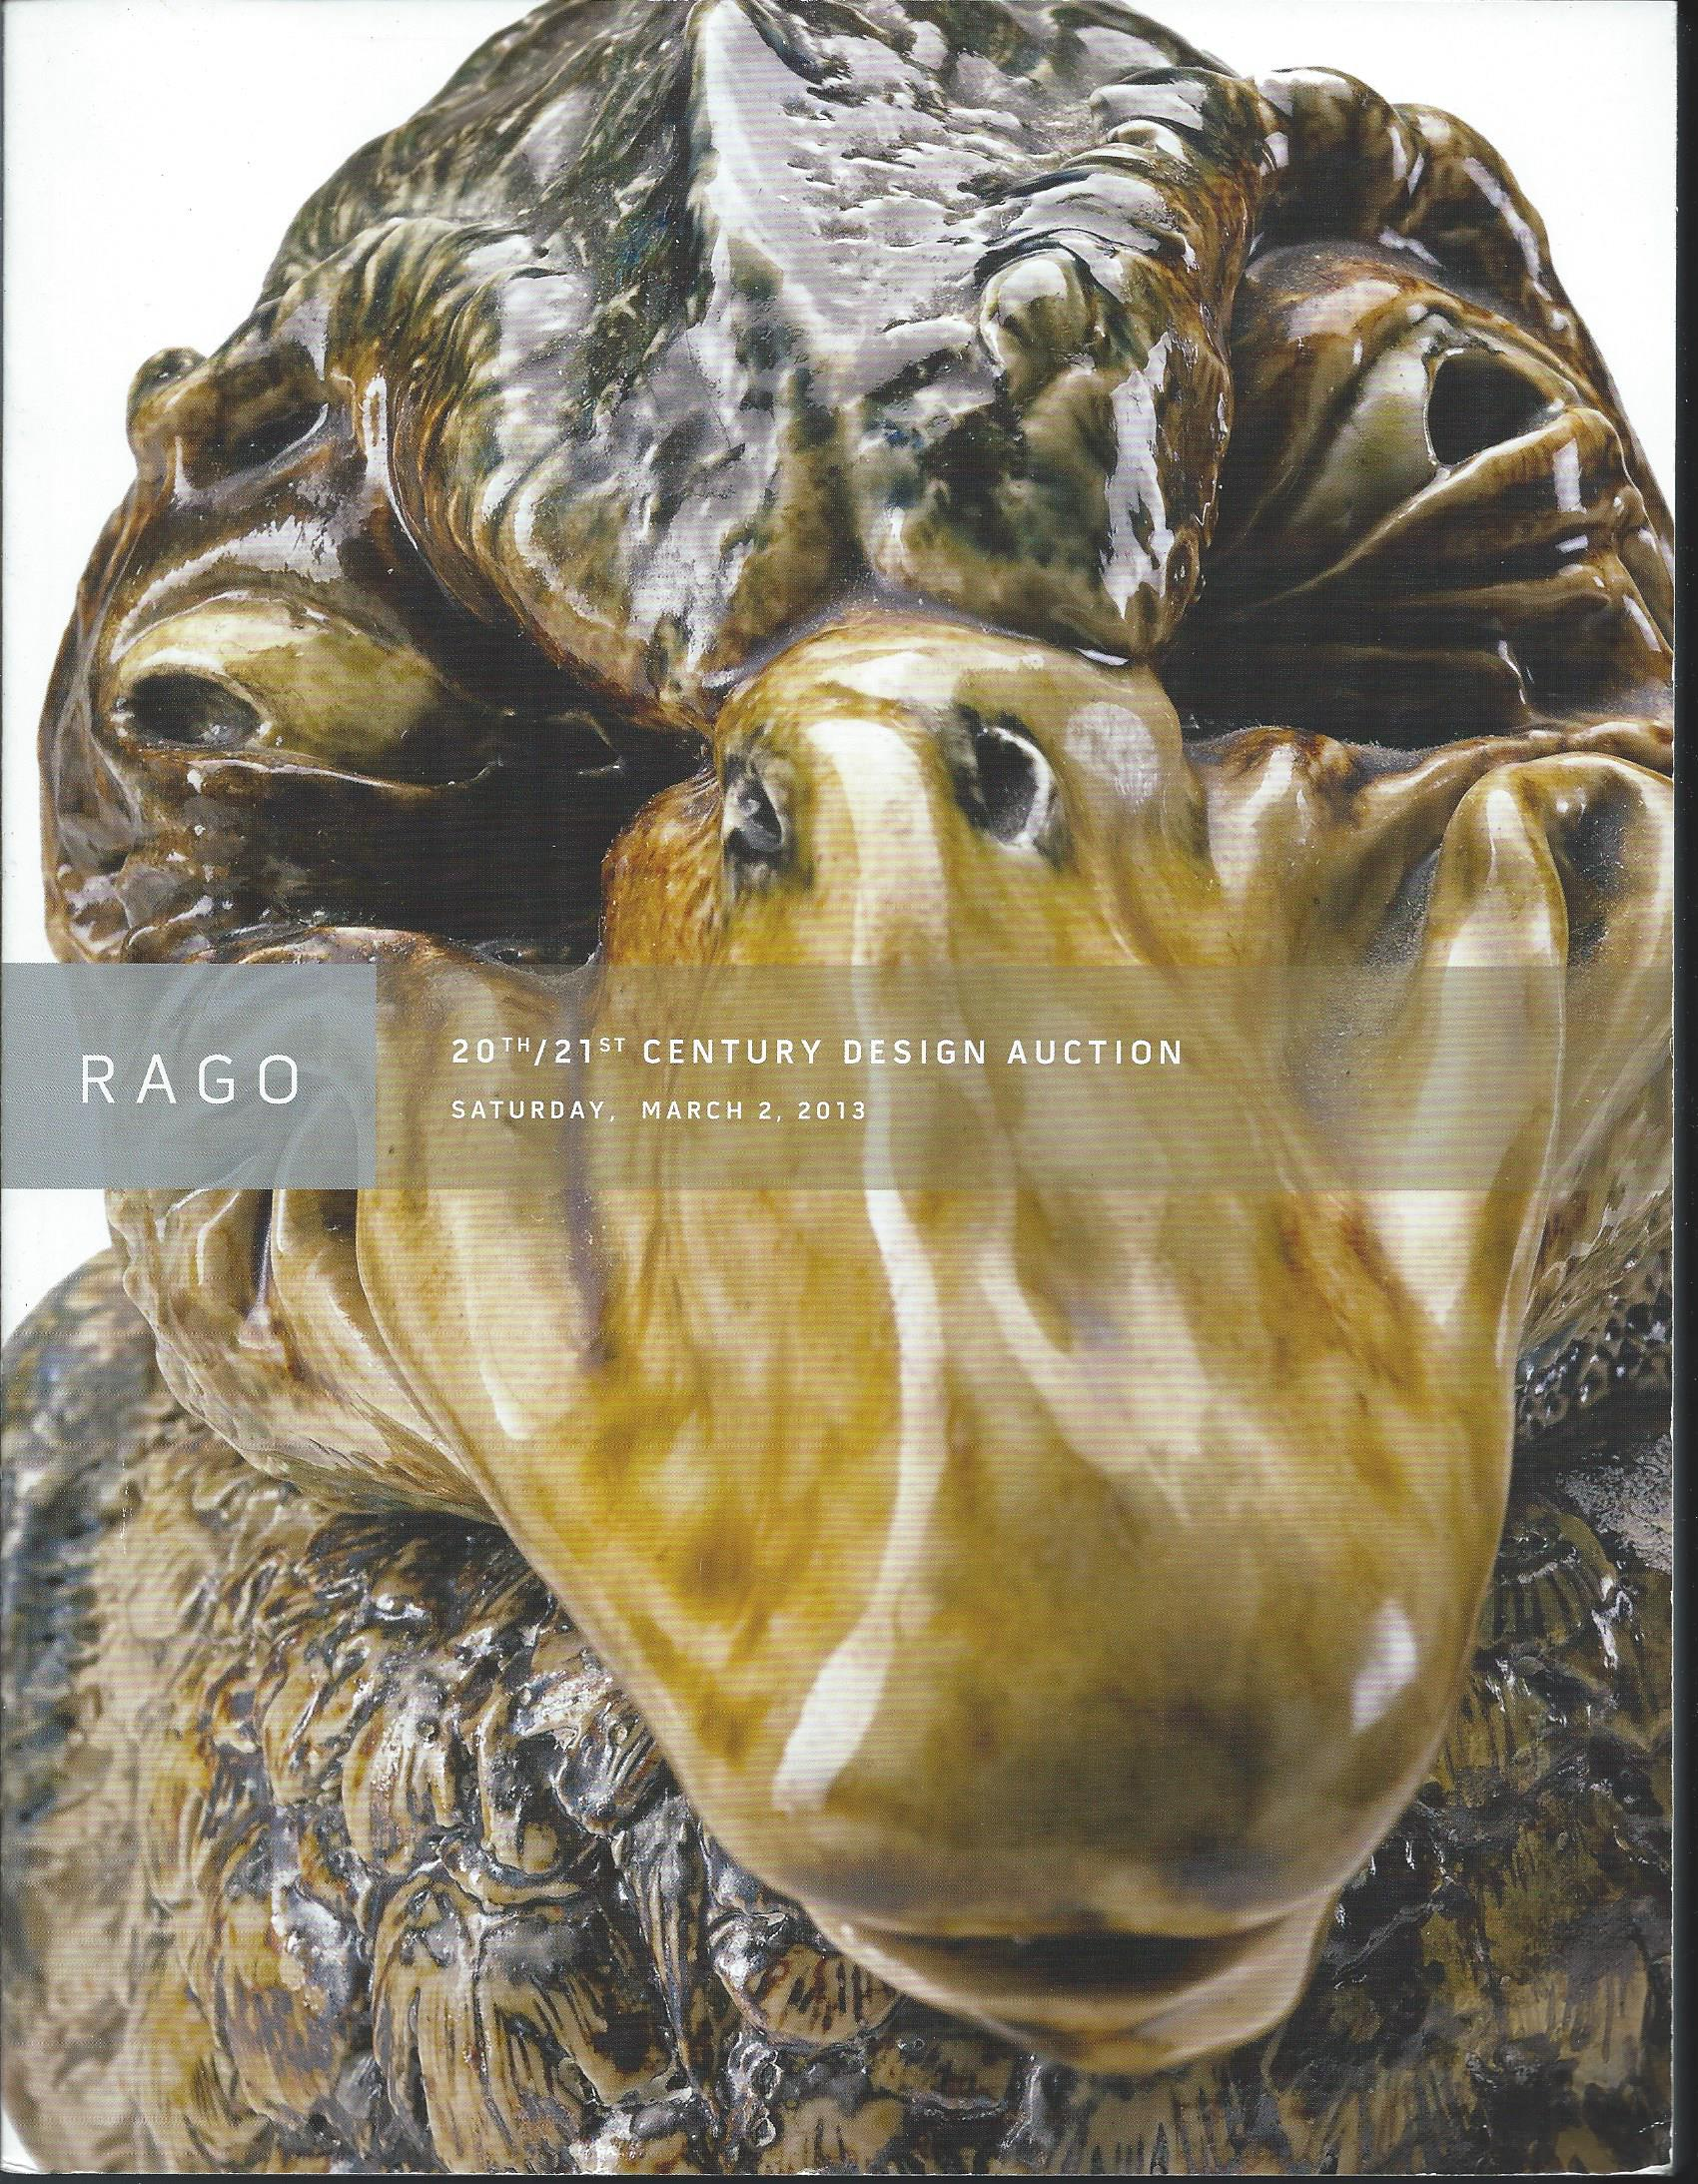 Image for Saturday, March 2, 2013; RAGO - 20TH & 21ST CENTUIRY DESIGN AUCTION